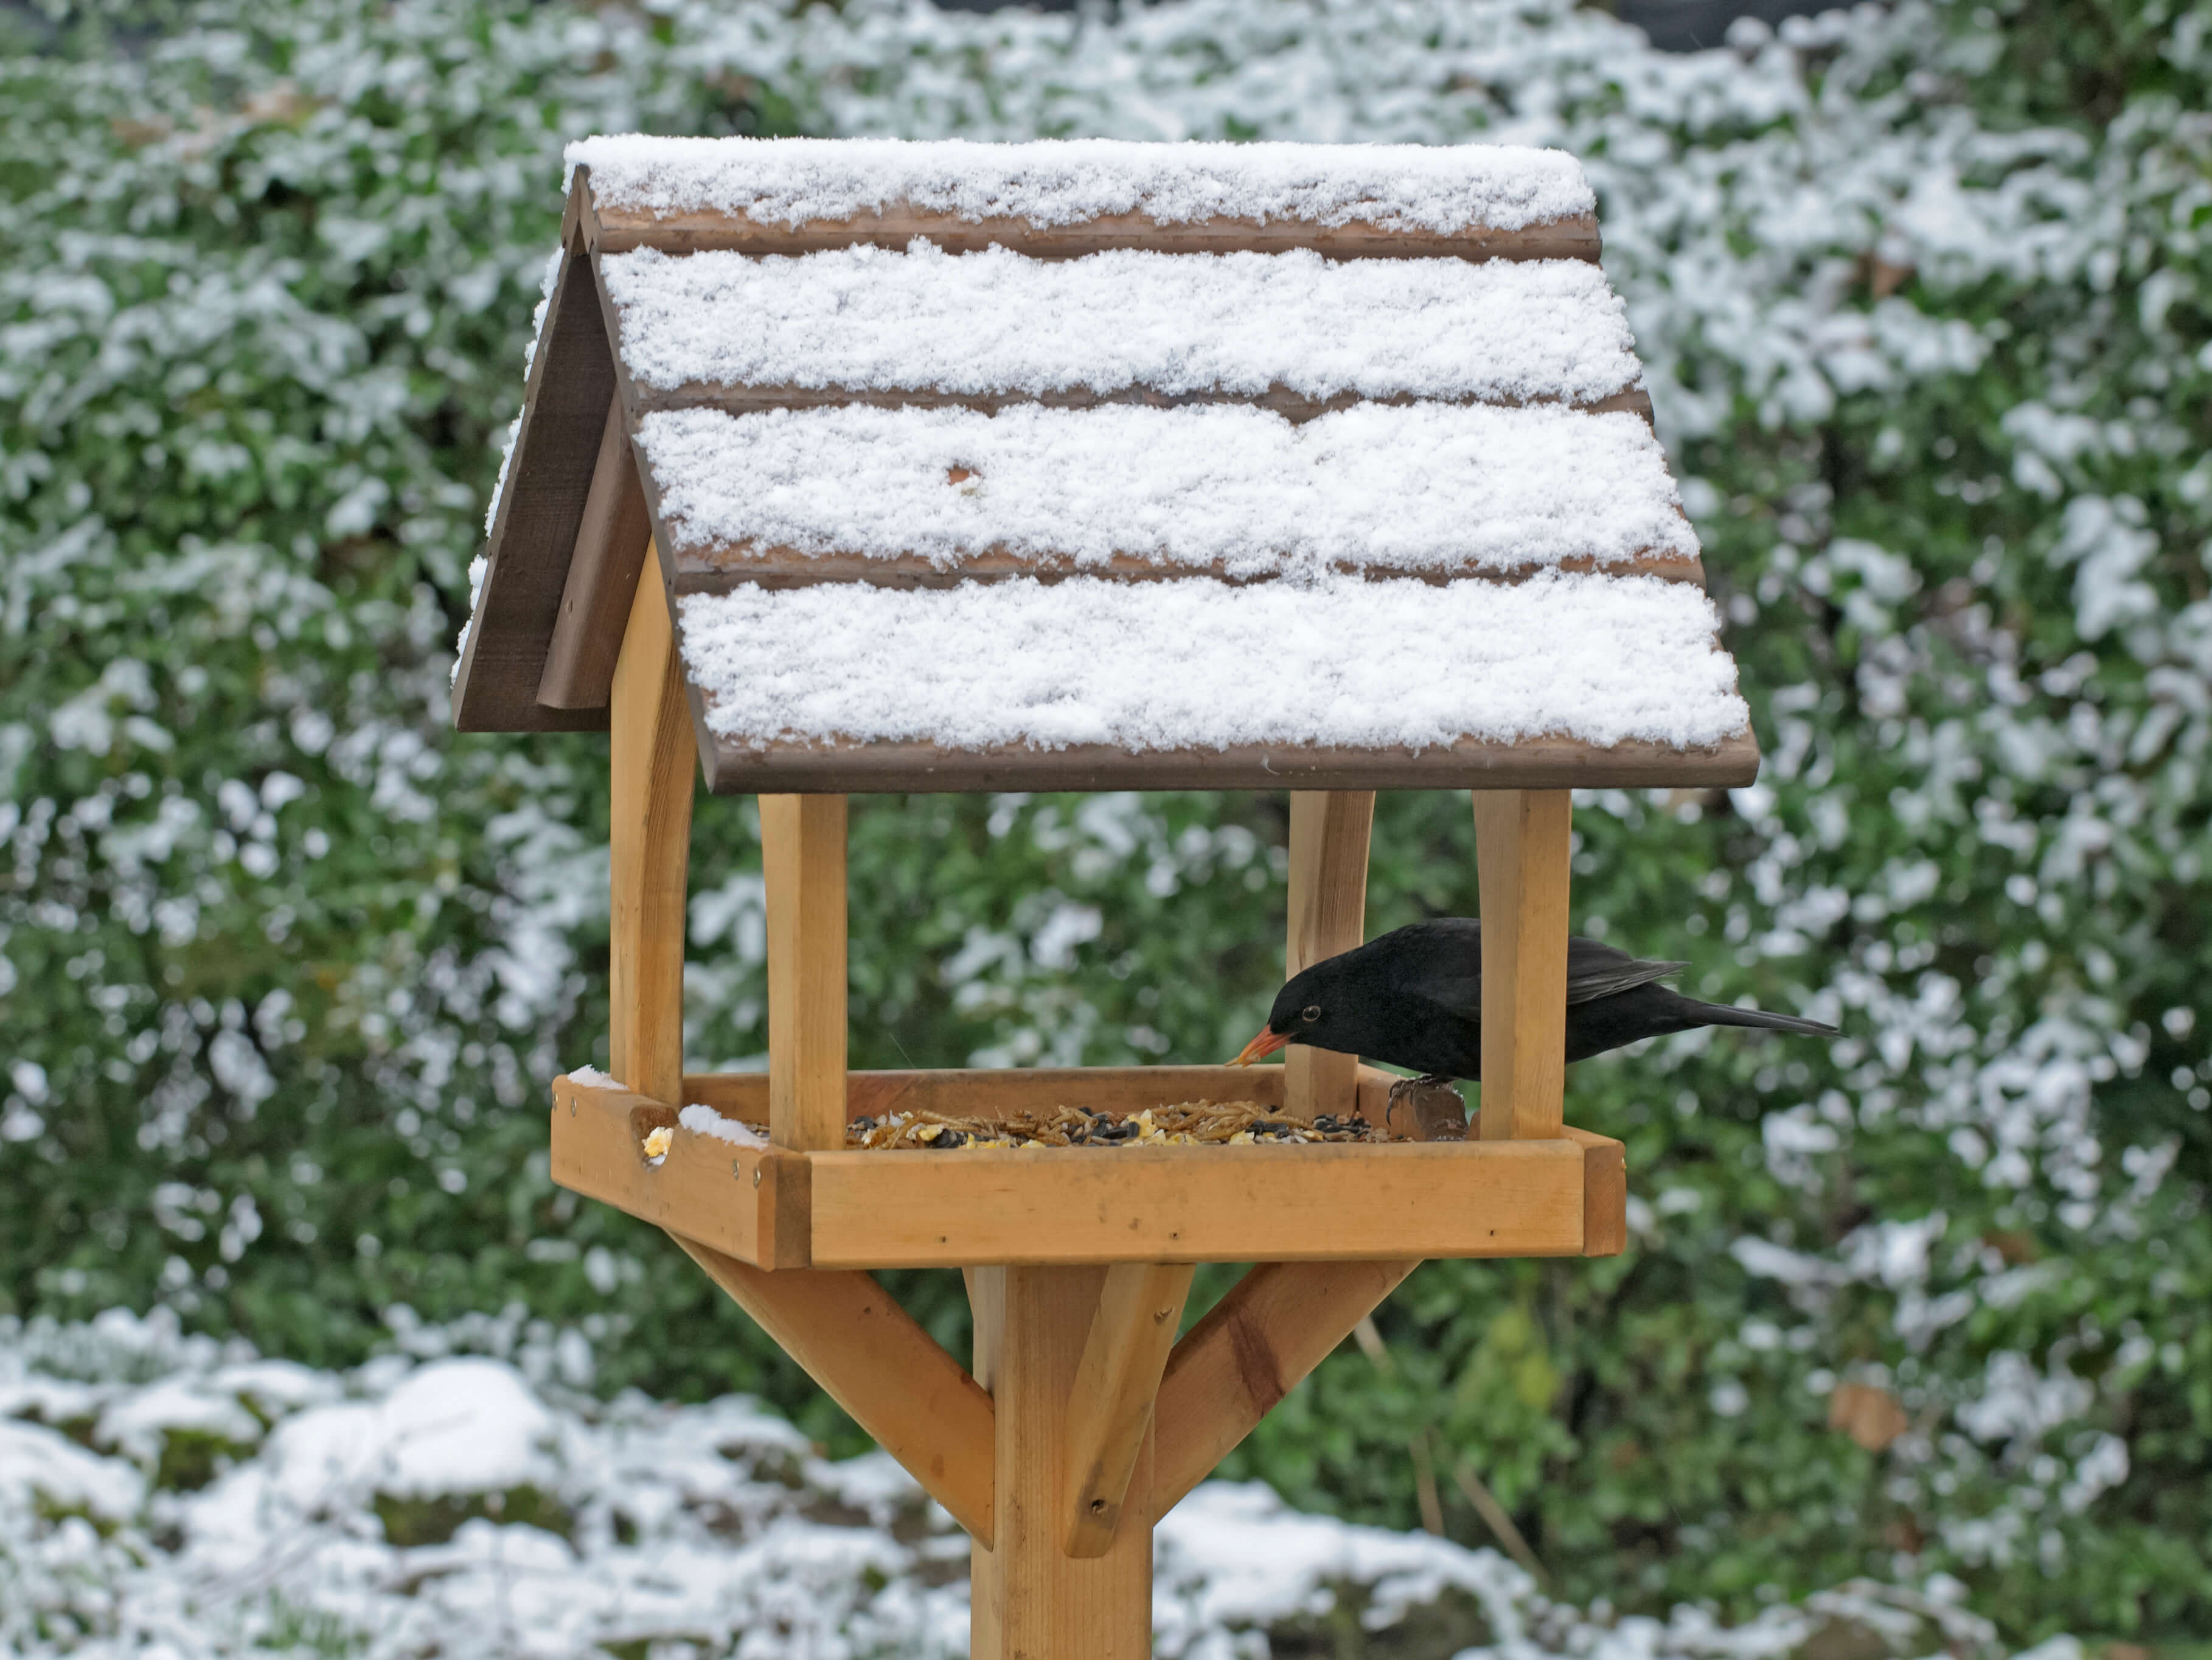 Blackbird on bird table